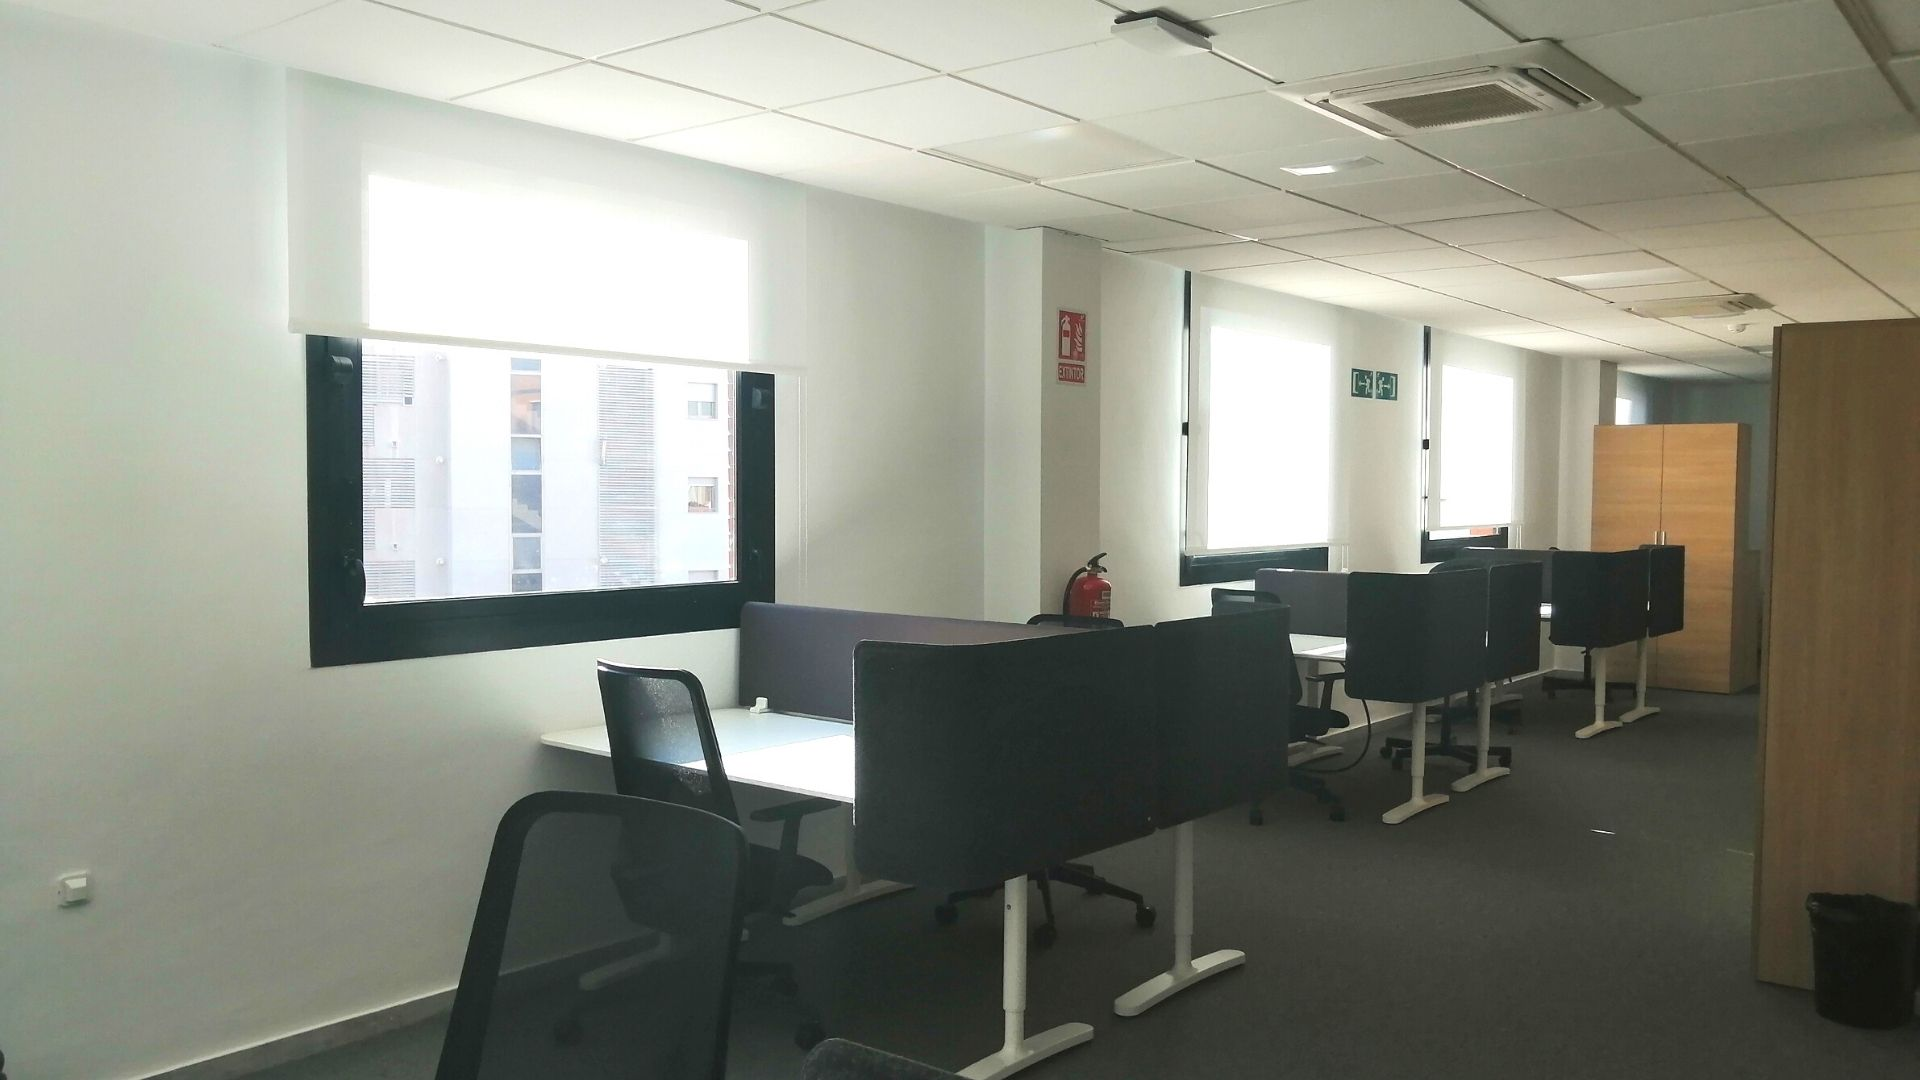 Our new Adessa office in Malaga is open! - working space